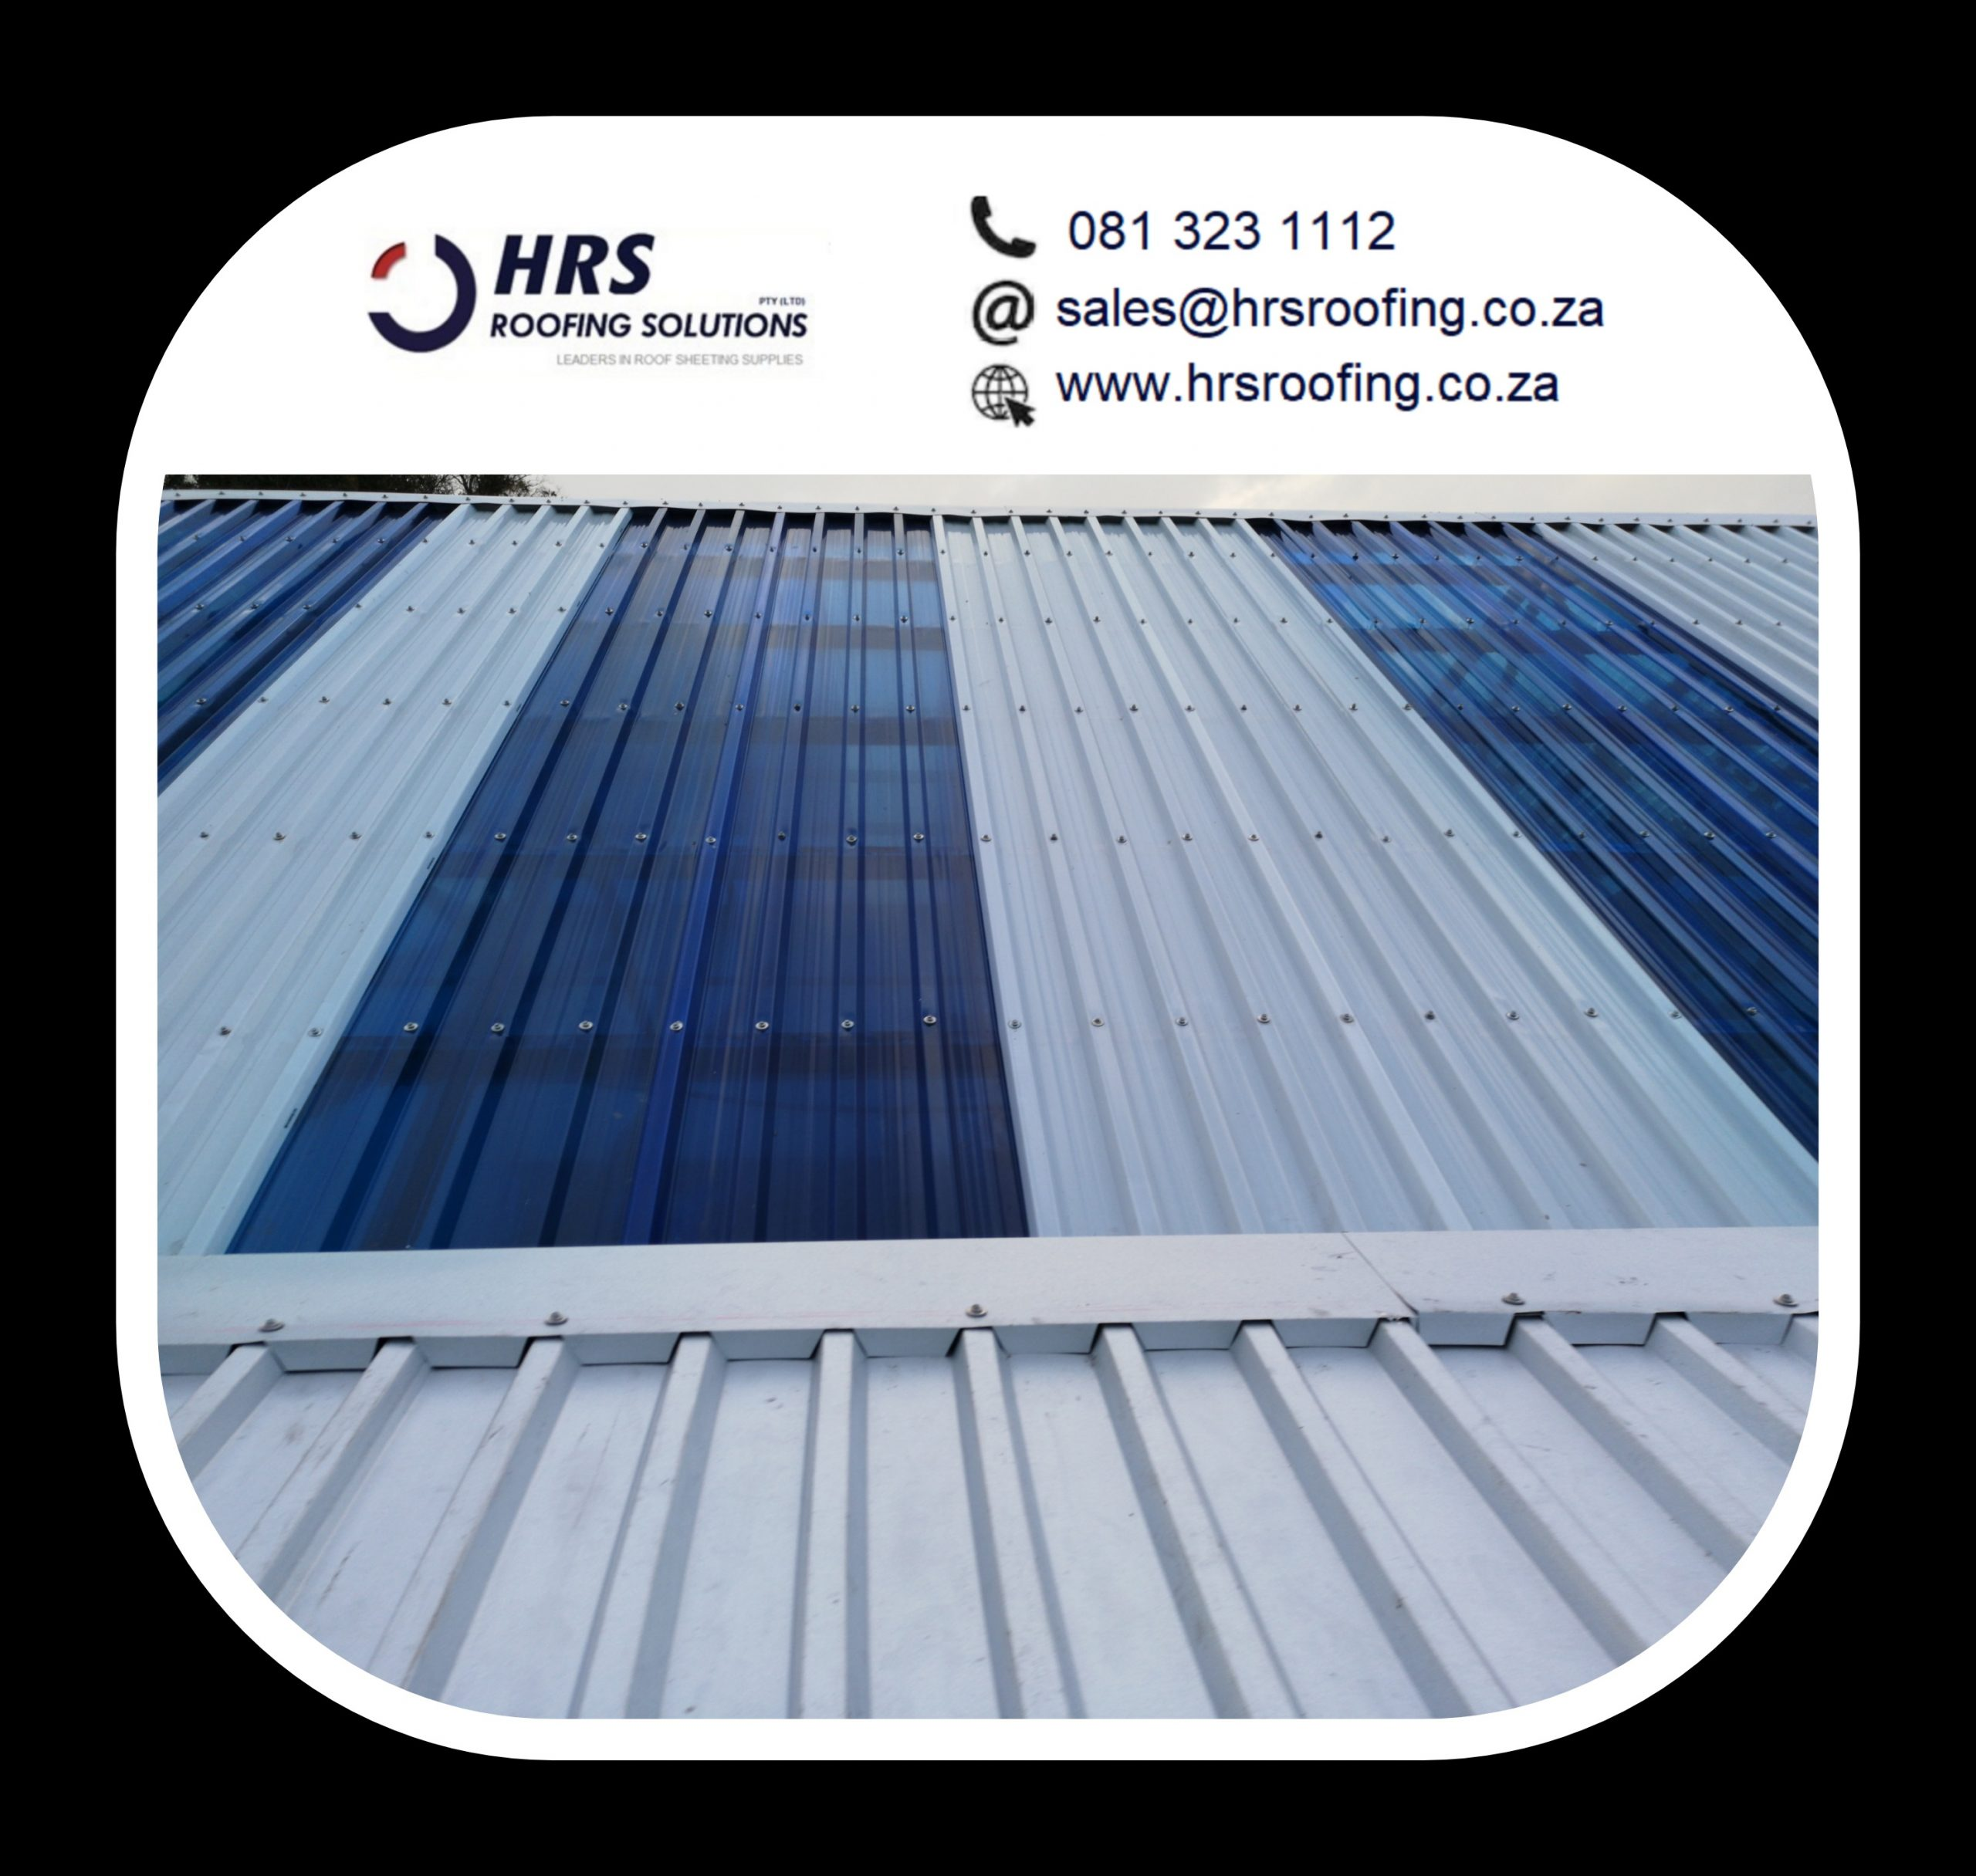 paarl piketberg Langebaan roof sheeting cape Town Zincalume Colorbond hrs roofing scaled - Roofing Gallery